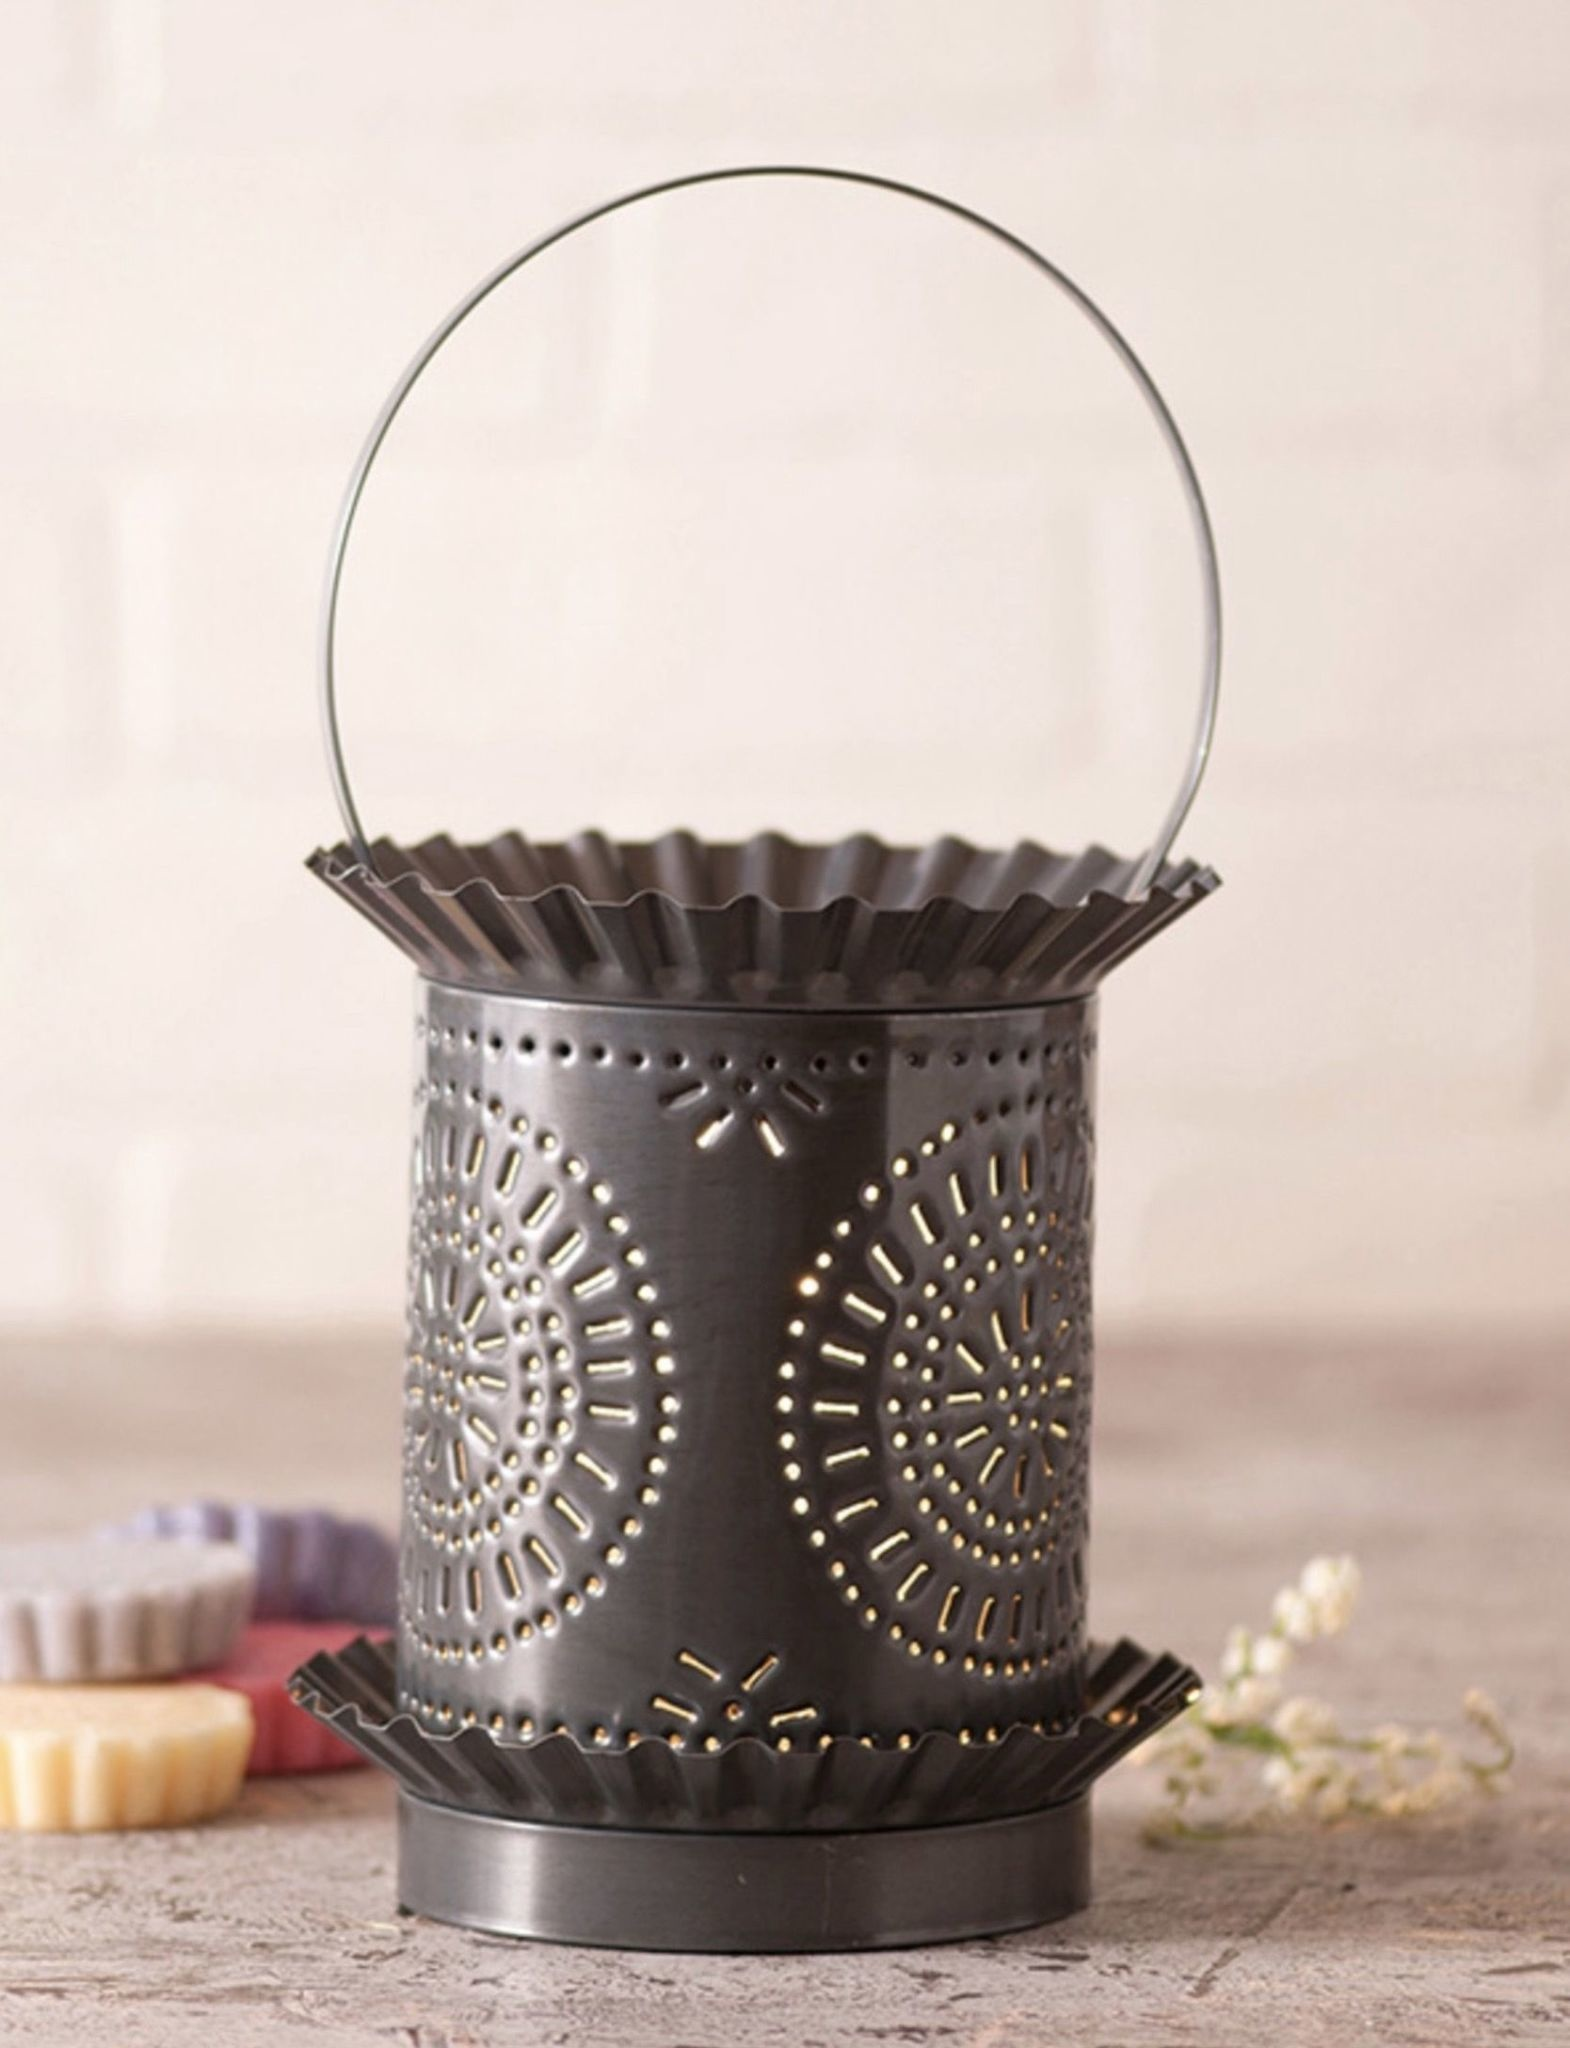 Irvin's Tinware Punched Tin Jumbo Wax Warmer With Chisel